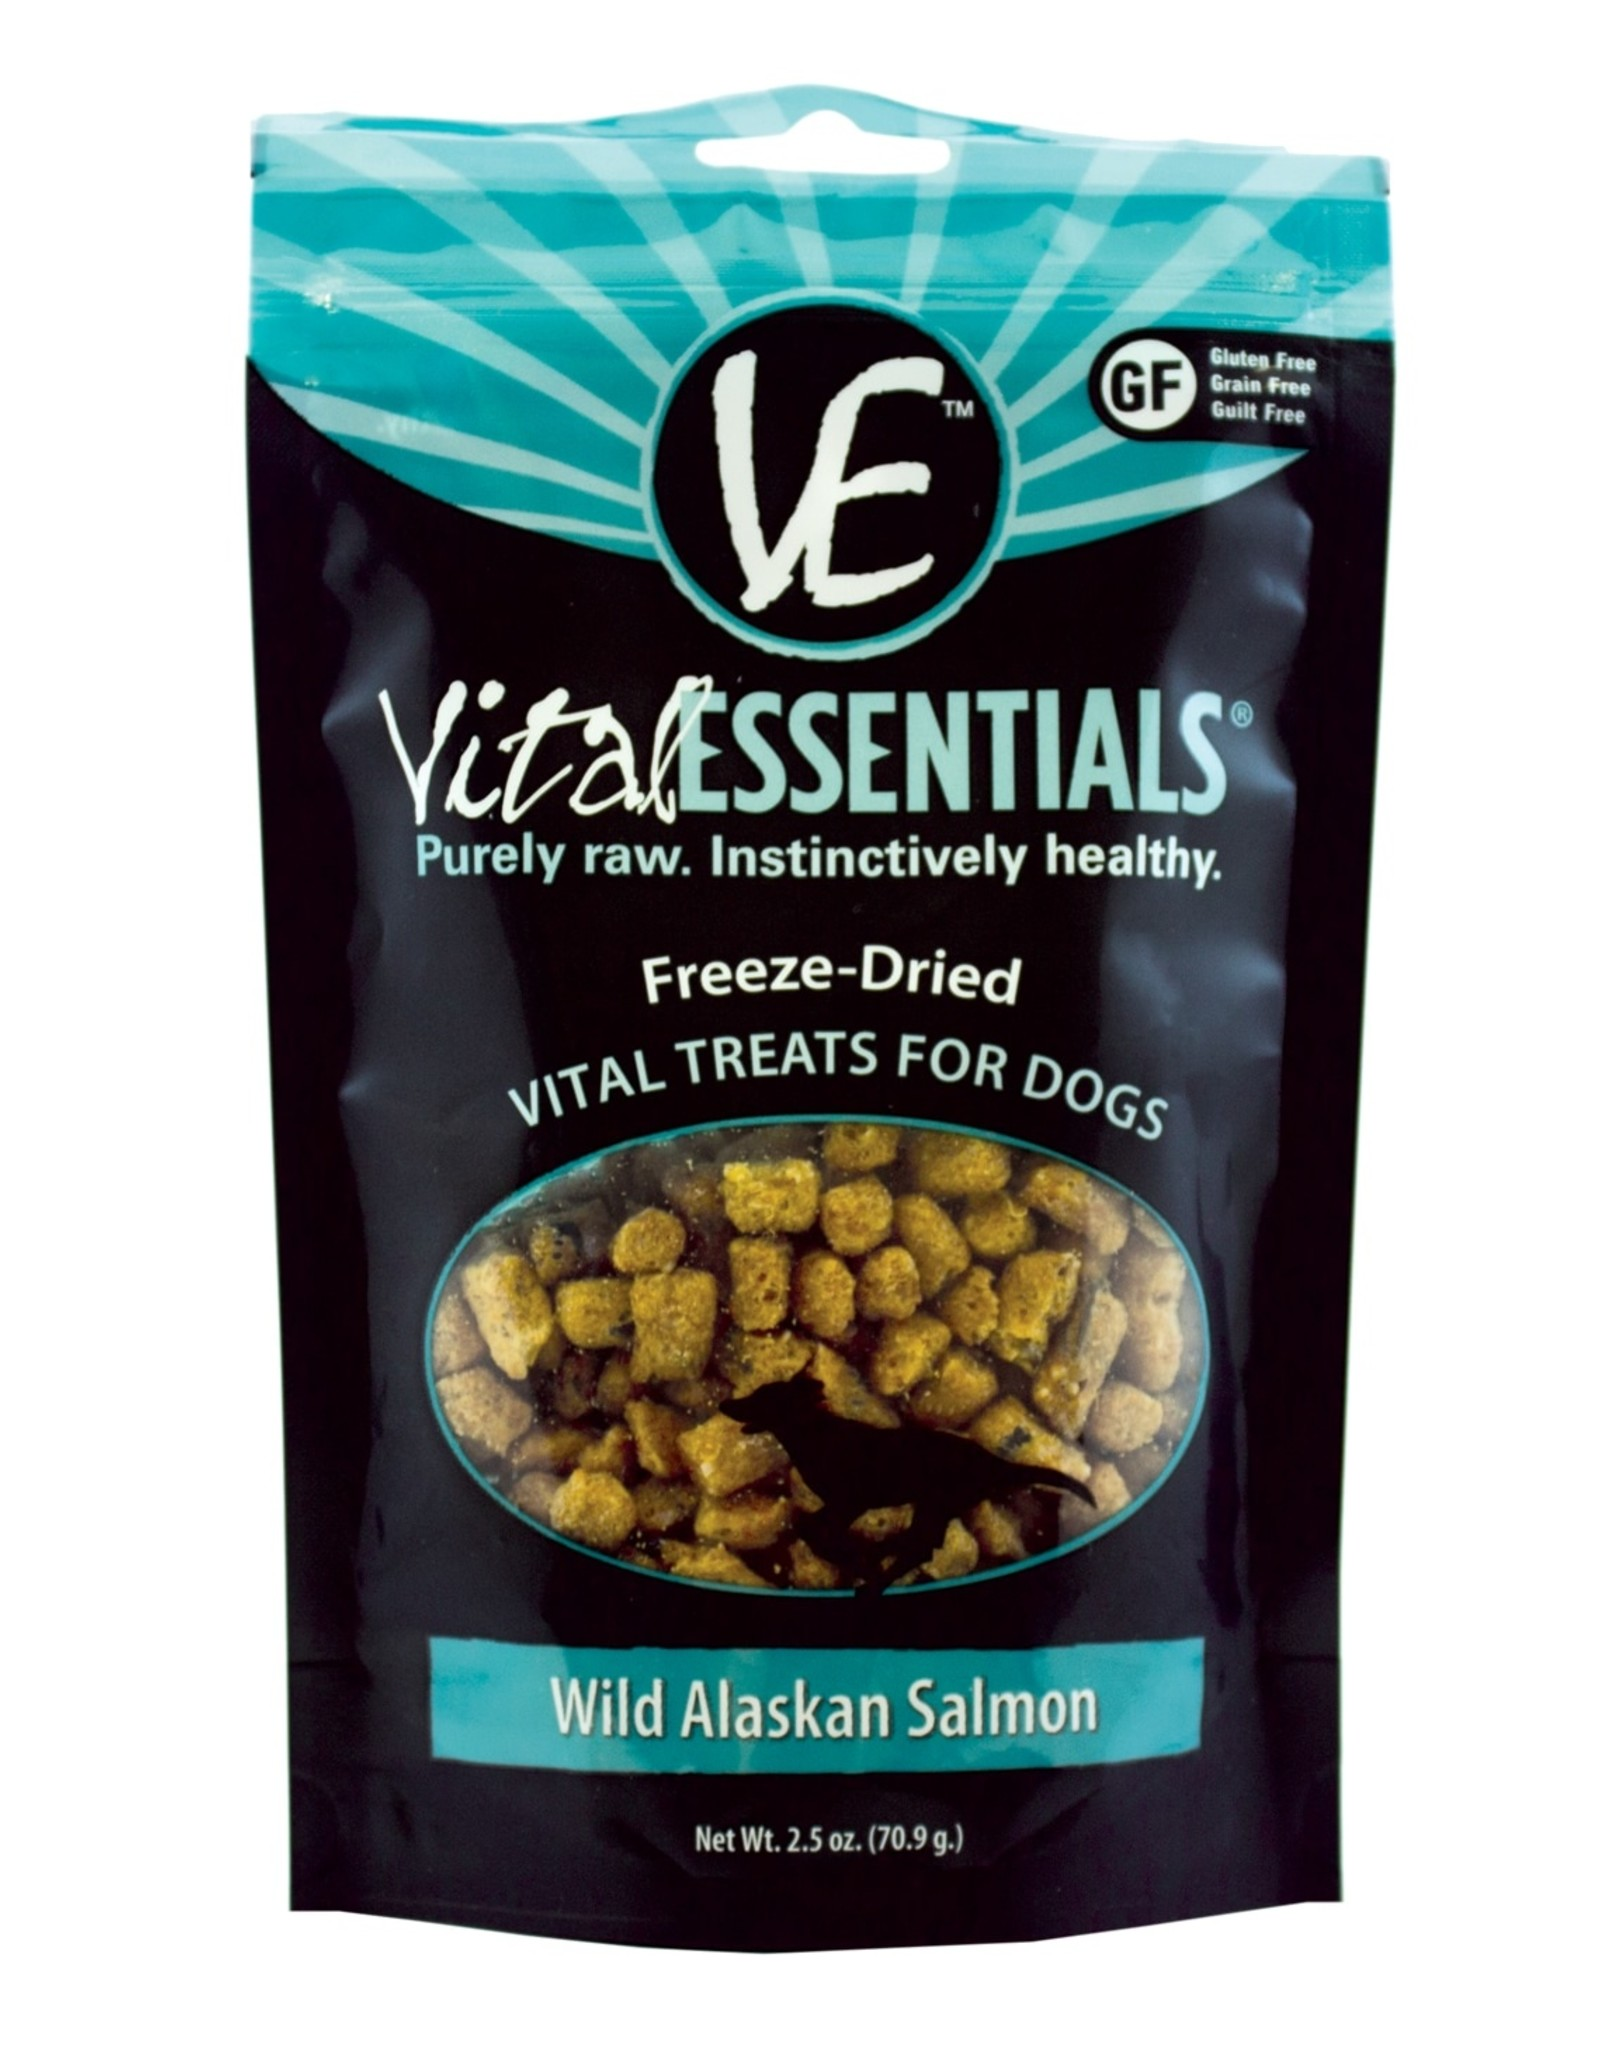 Vital Essentials Dog Wild Alaskan Salmon Freeze-Dried Treats - 2.5oz